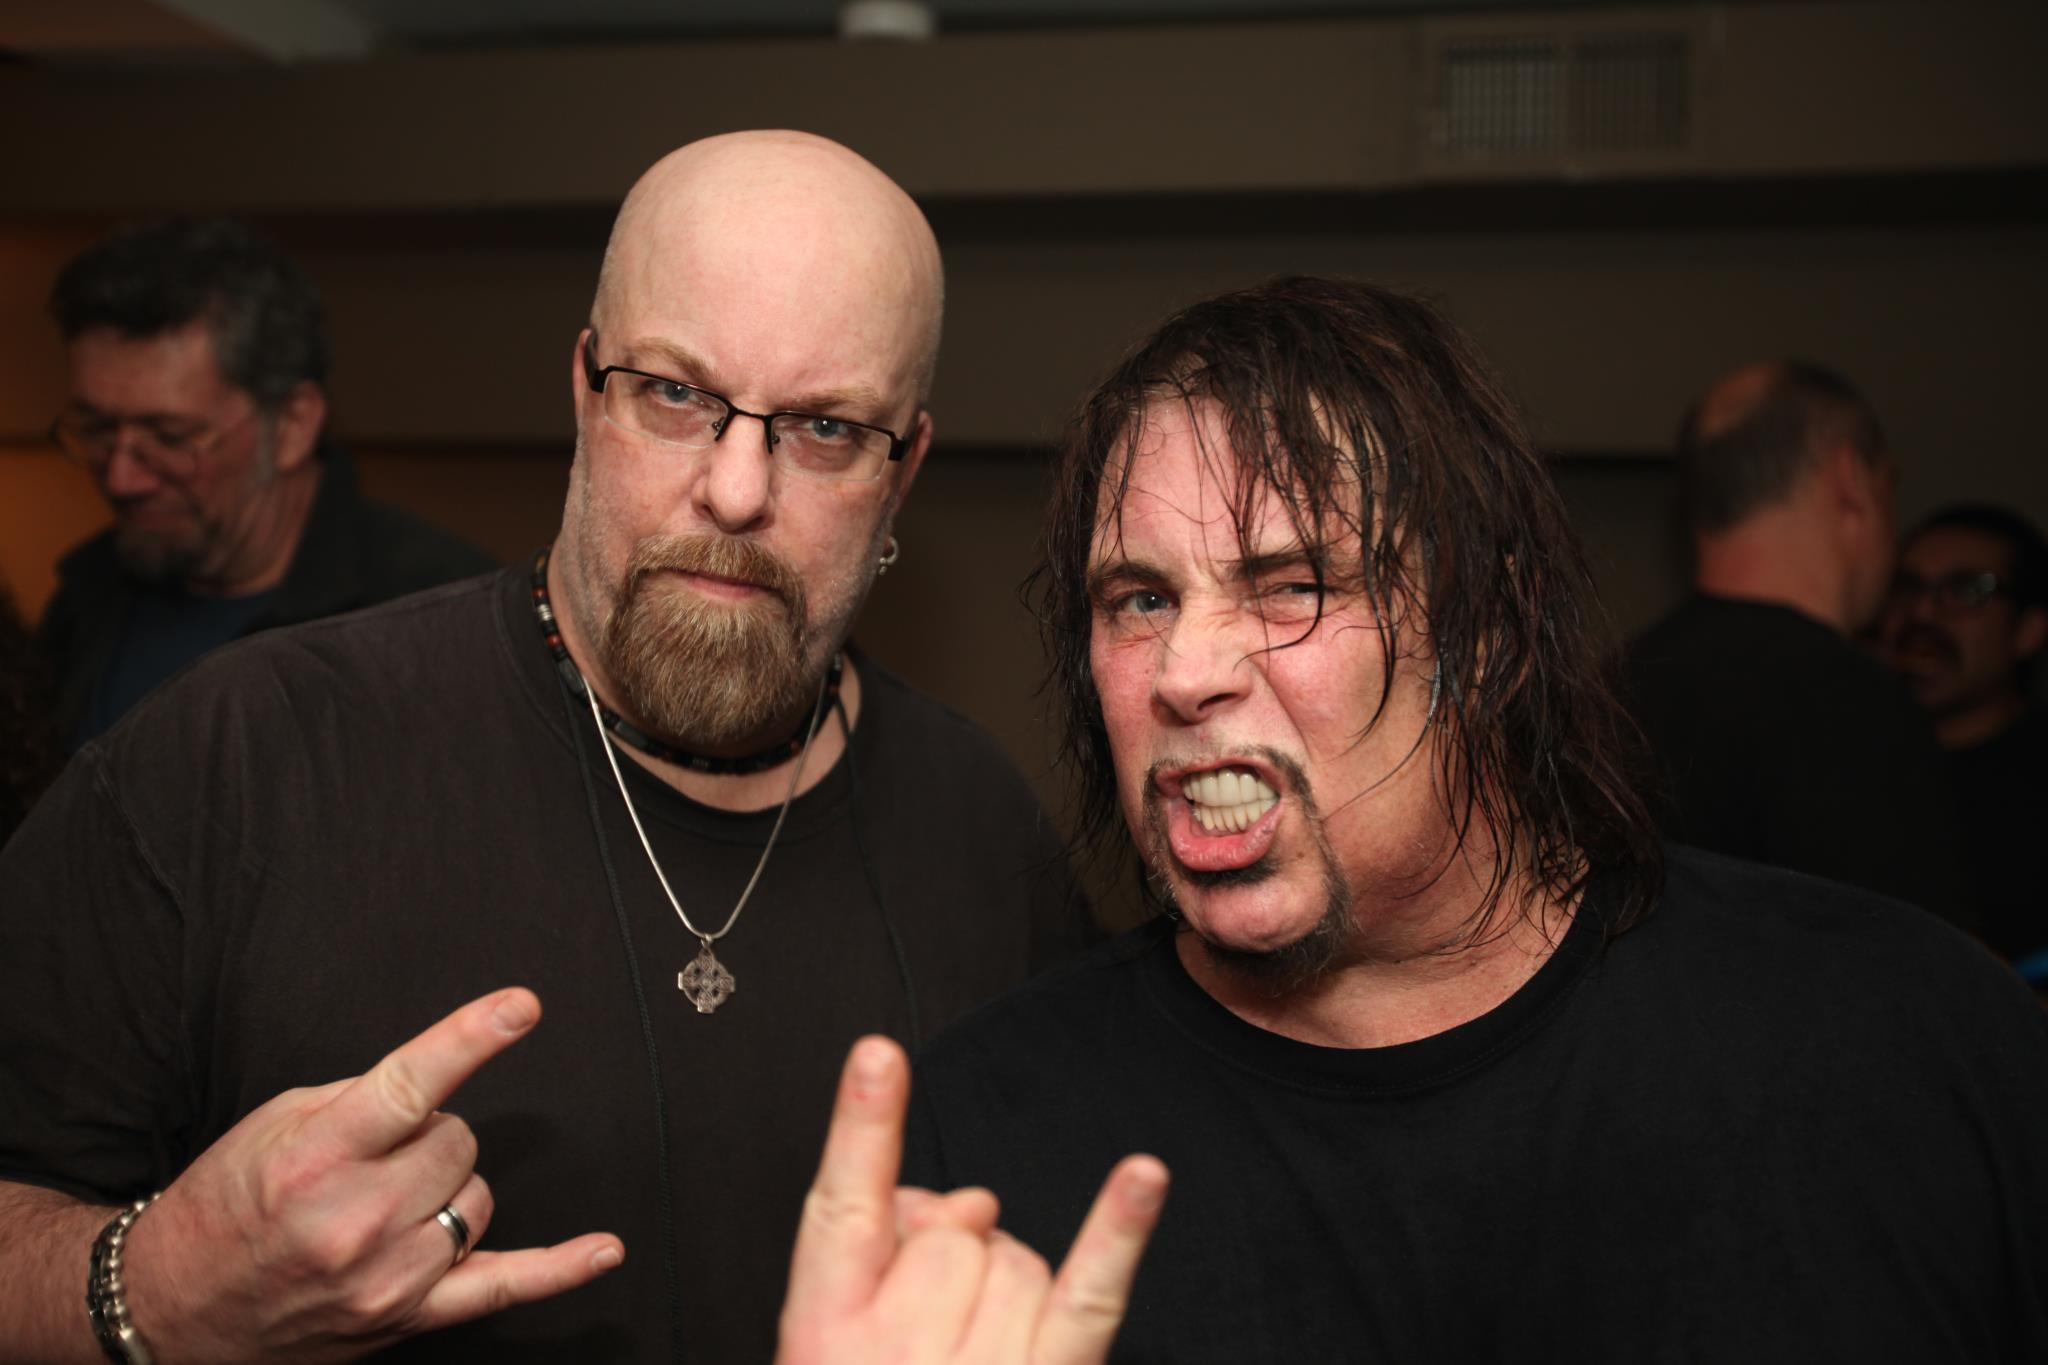 With with Dave Wyndorf of Monster Magnet at Music Hall of Williamsburg, Brooklyn, NY- January 13, 2012. Photo taken by Jceal Parker